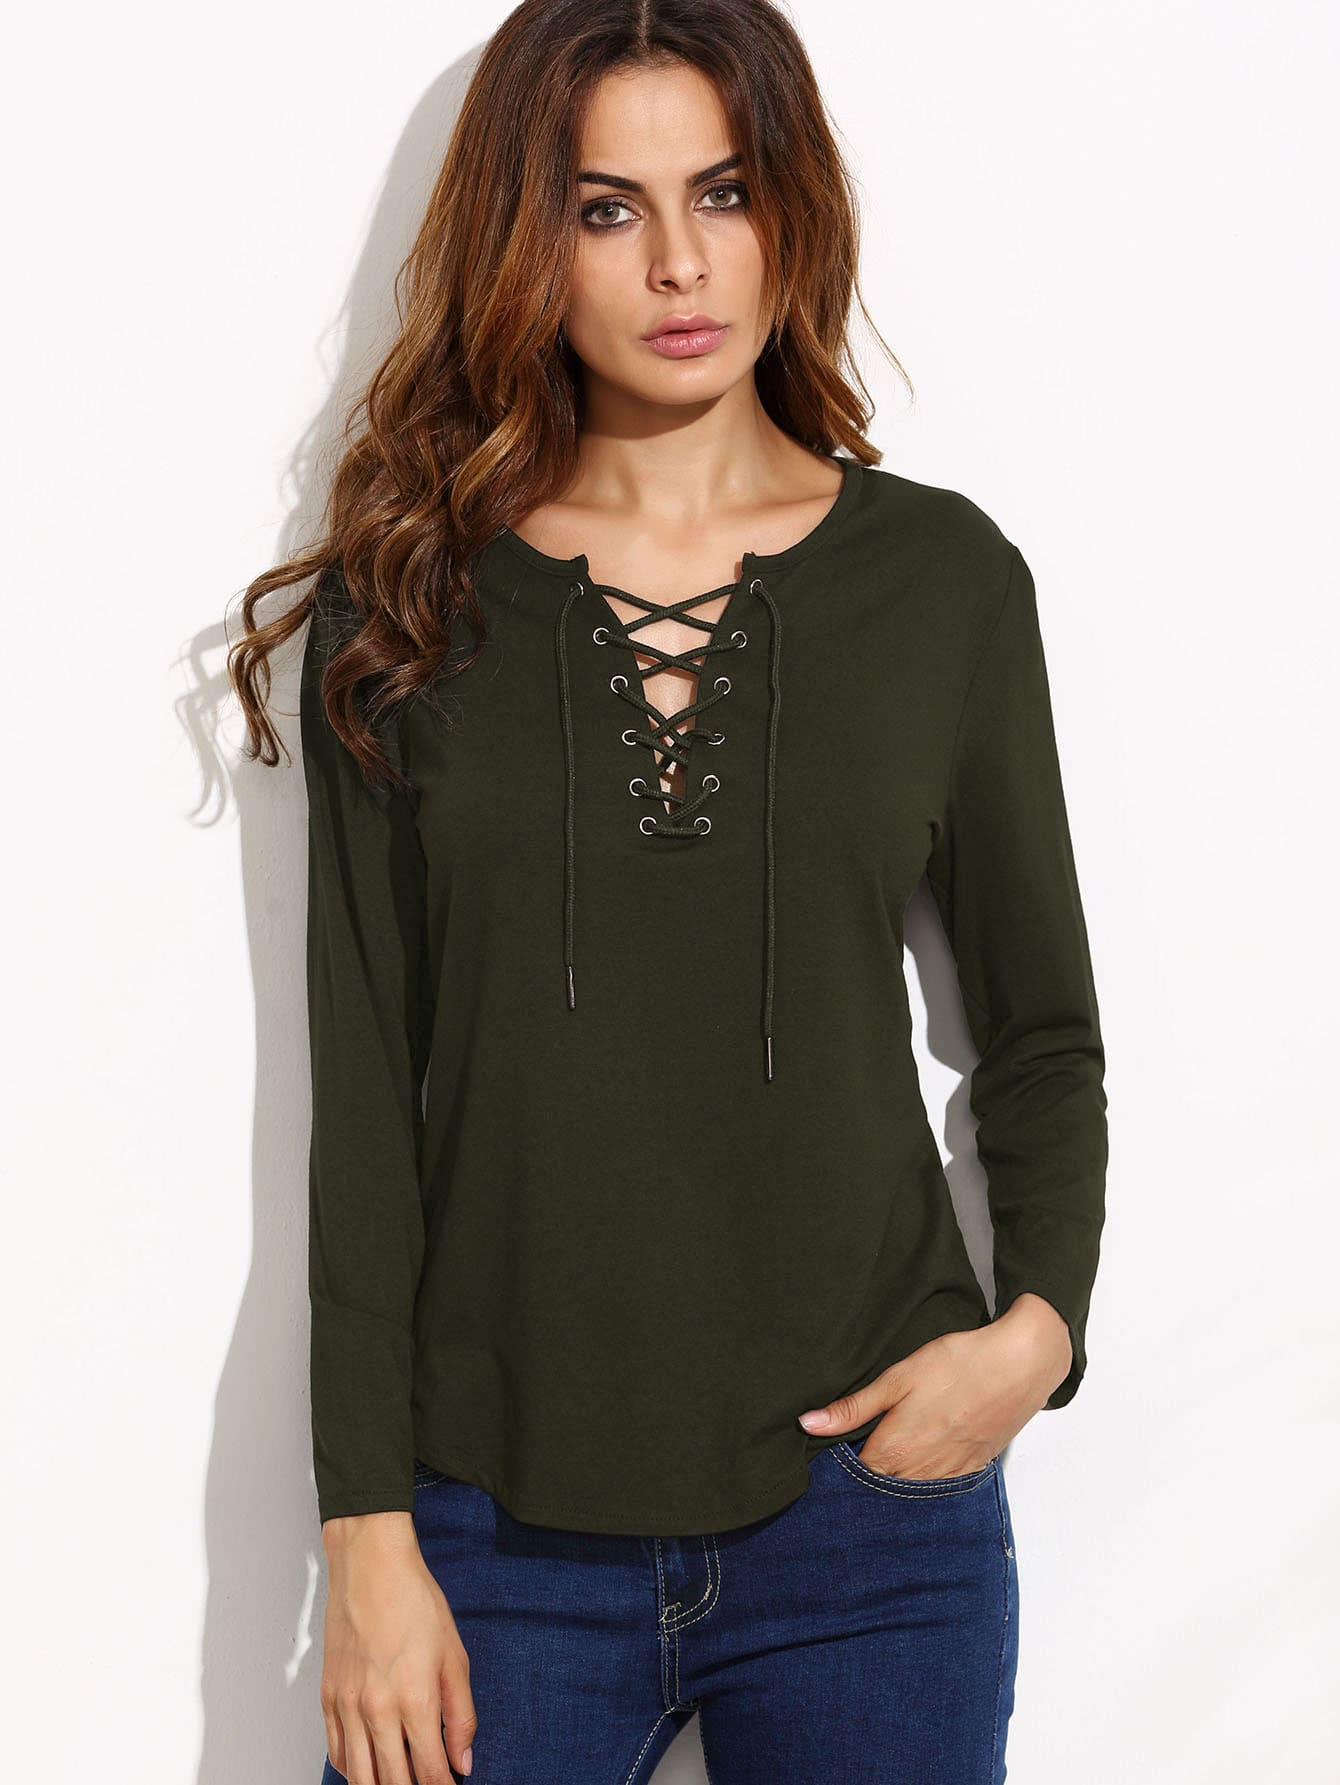 Grommet Lace Up Top striped grommet lace up dropped shoulder top